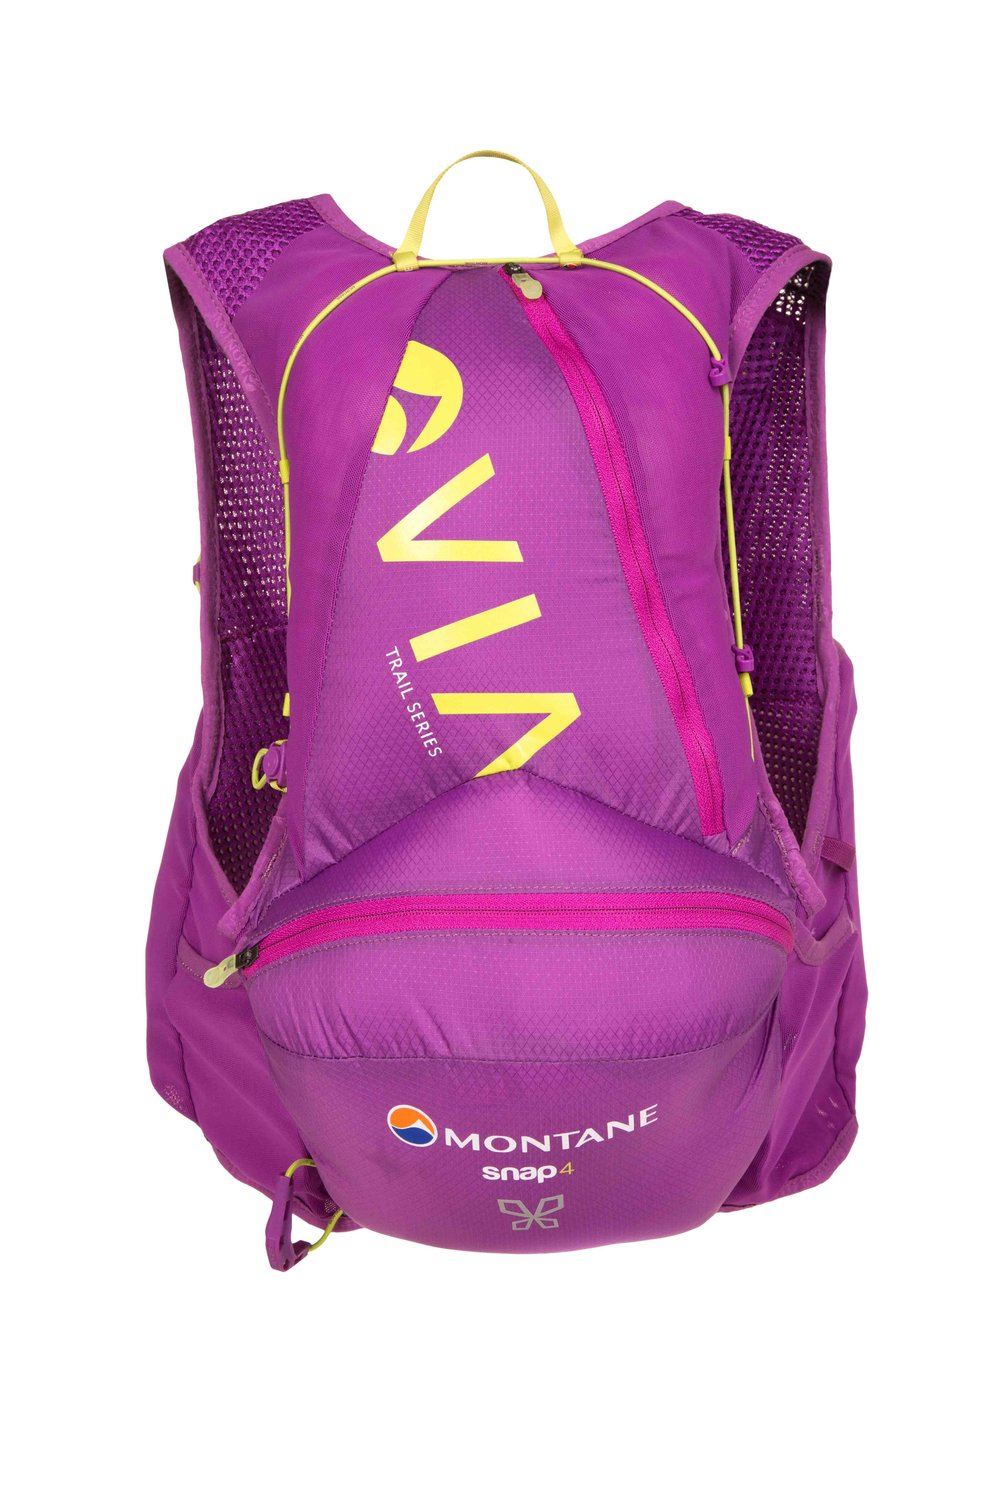 Montane Women's Via Snap 4 £100 up for grabs